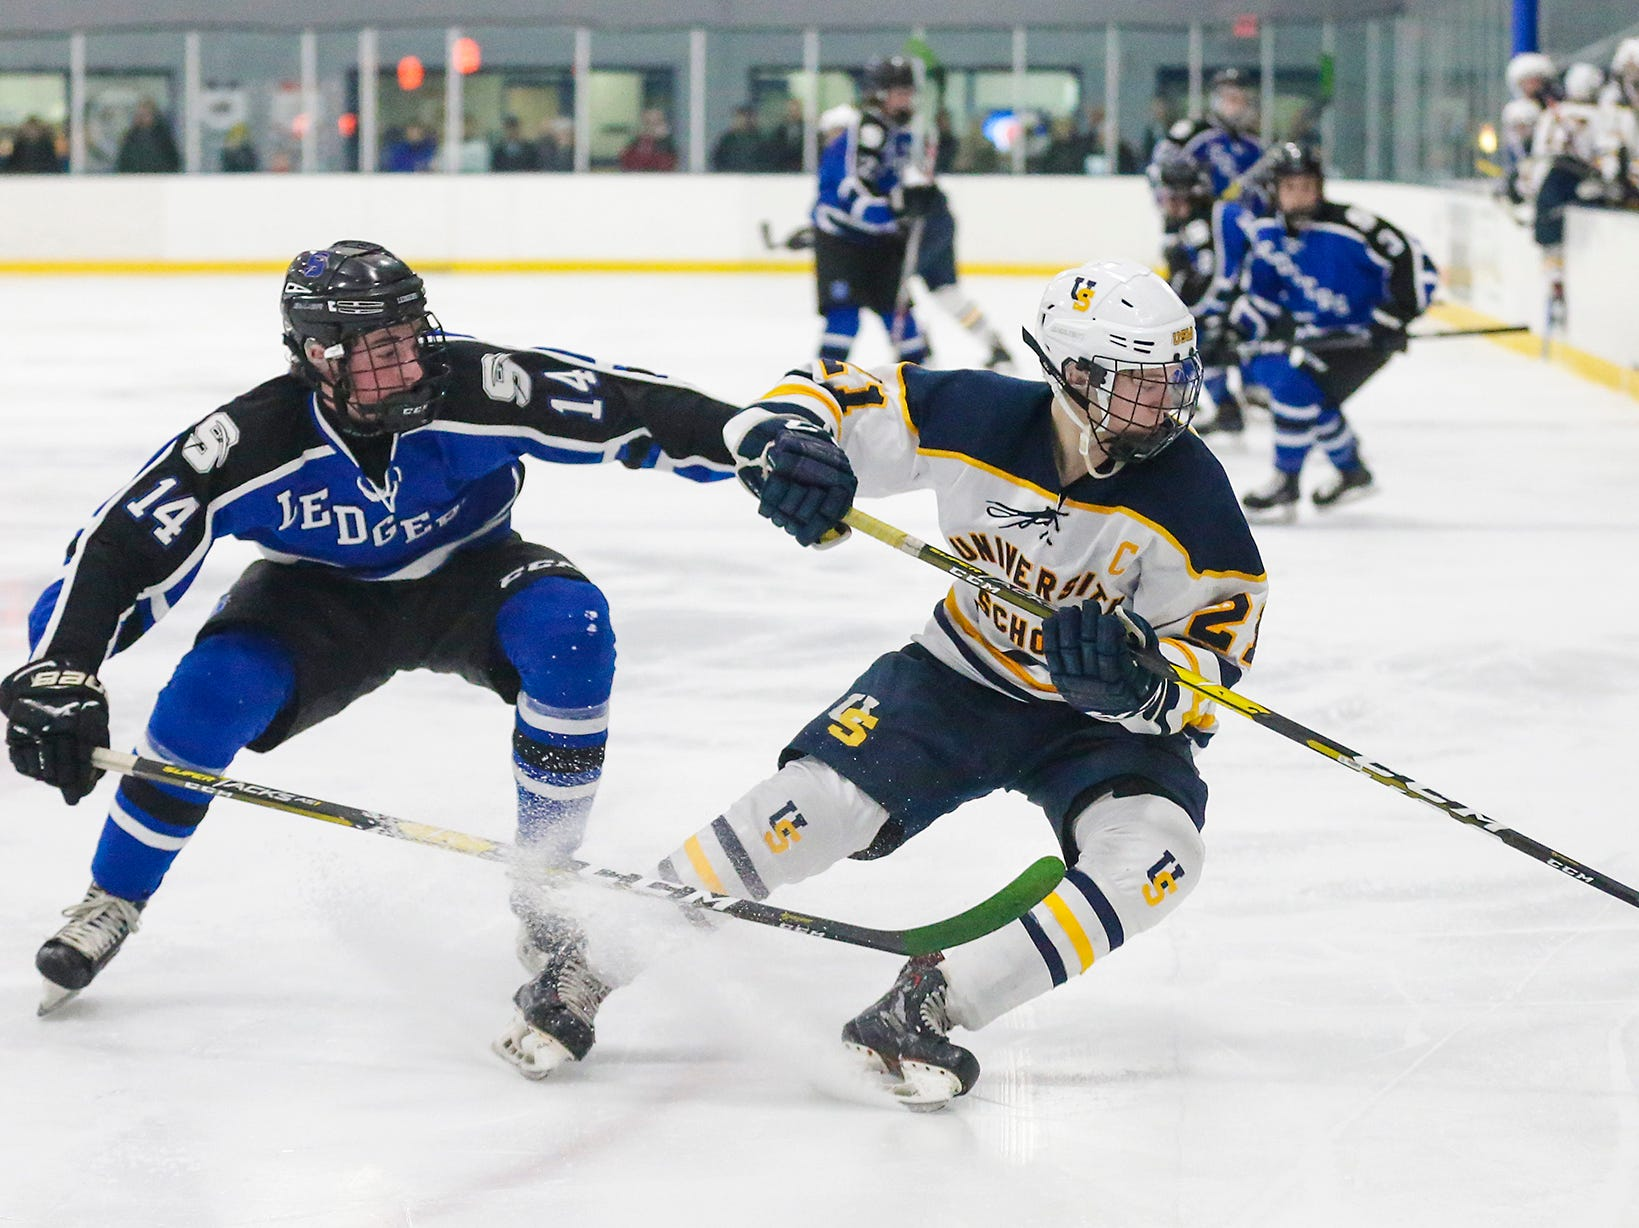 St. Mary's Springs boys co-op hockey's Connor McLaughlin (14) defends against University School of Milwaukee's Casey Roepke (21) Friday, February 22, 2019 during their WIAA sectional final game in Fond du Lac. University School won the game 6-1 and will advance to state. Doug Raflik/USA TODAY NETWORK-Wisconsin